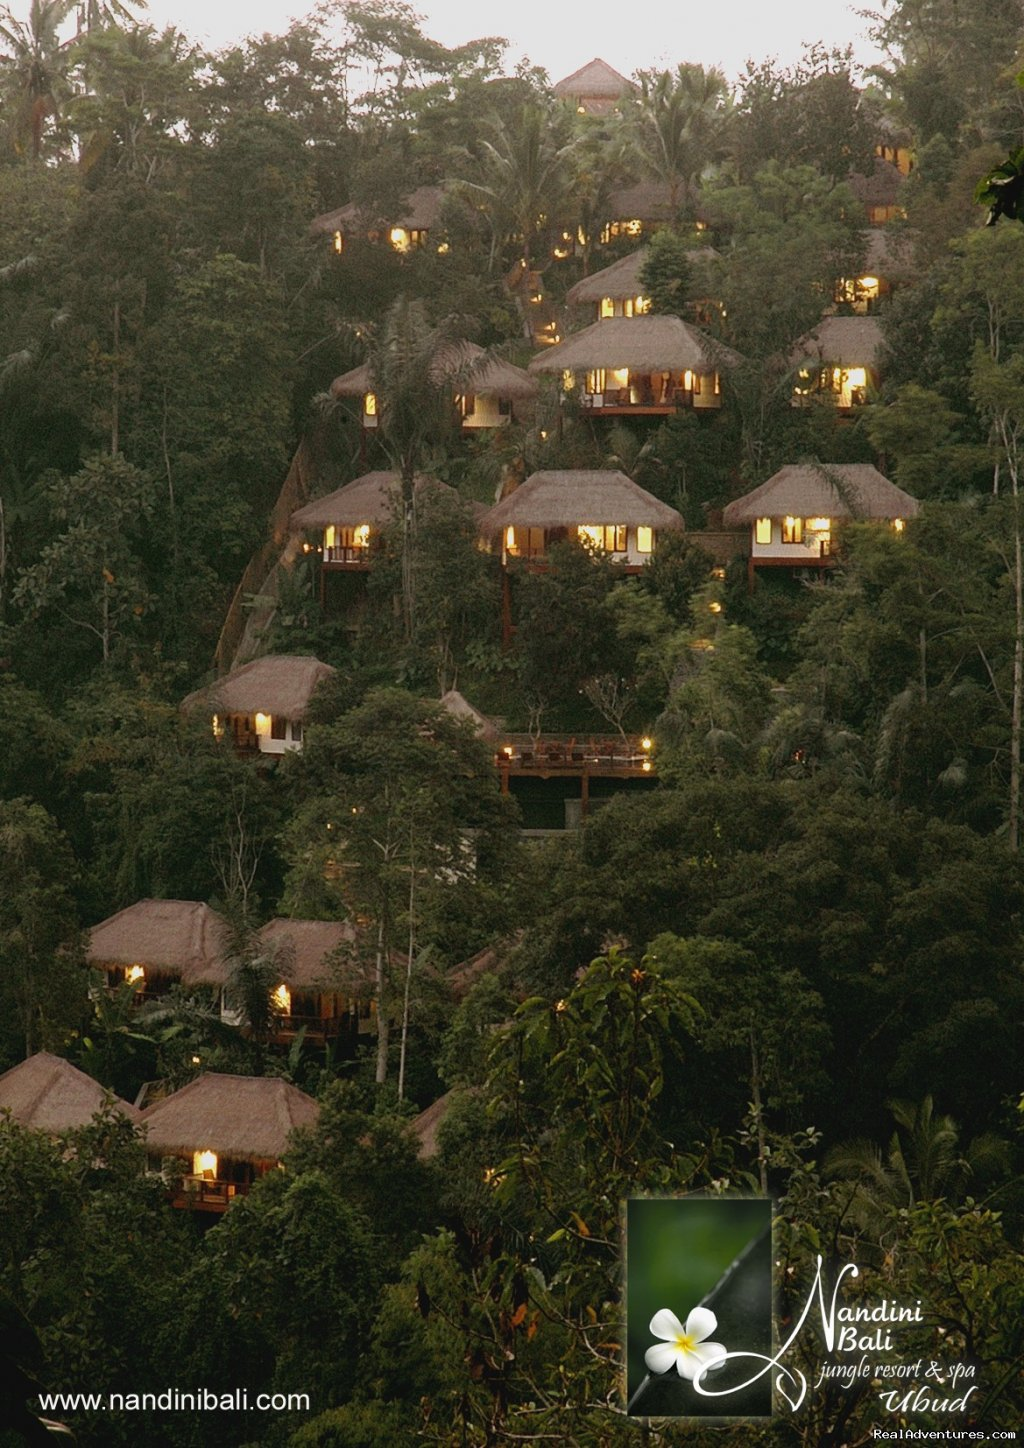 On the slopes of the Ayung River Valley, in the heart of the rainforest, the hotel offers complete relaxation in a spectacular setting.